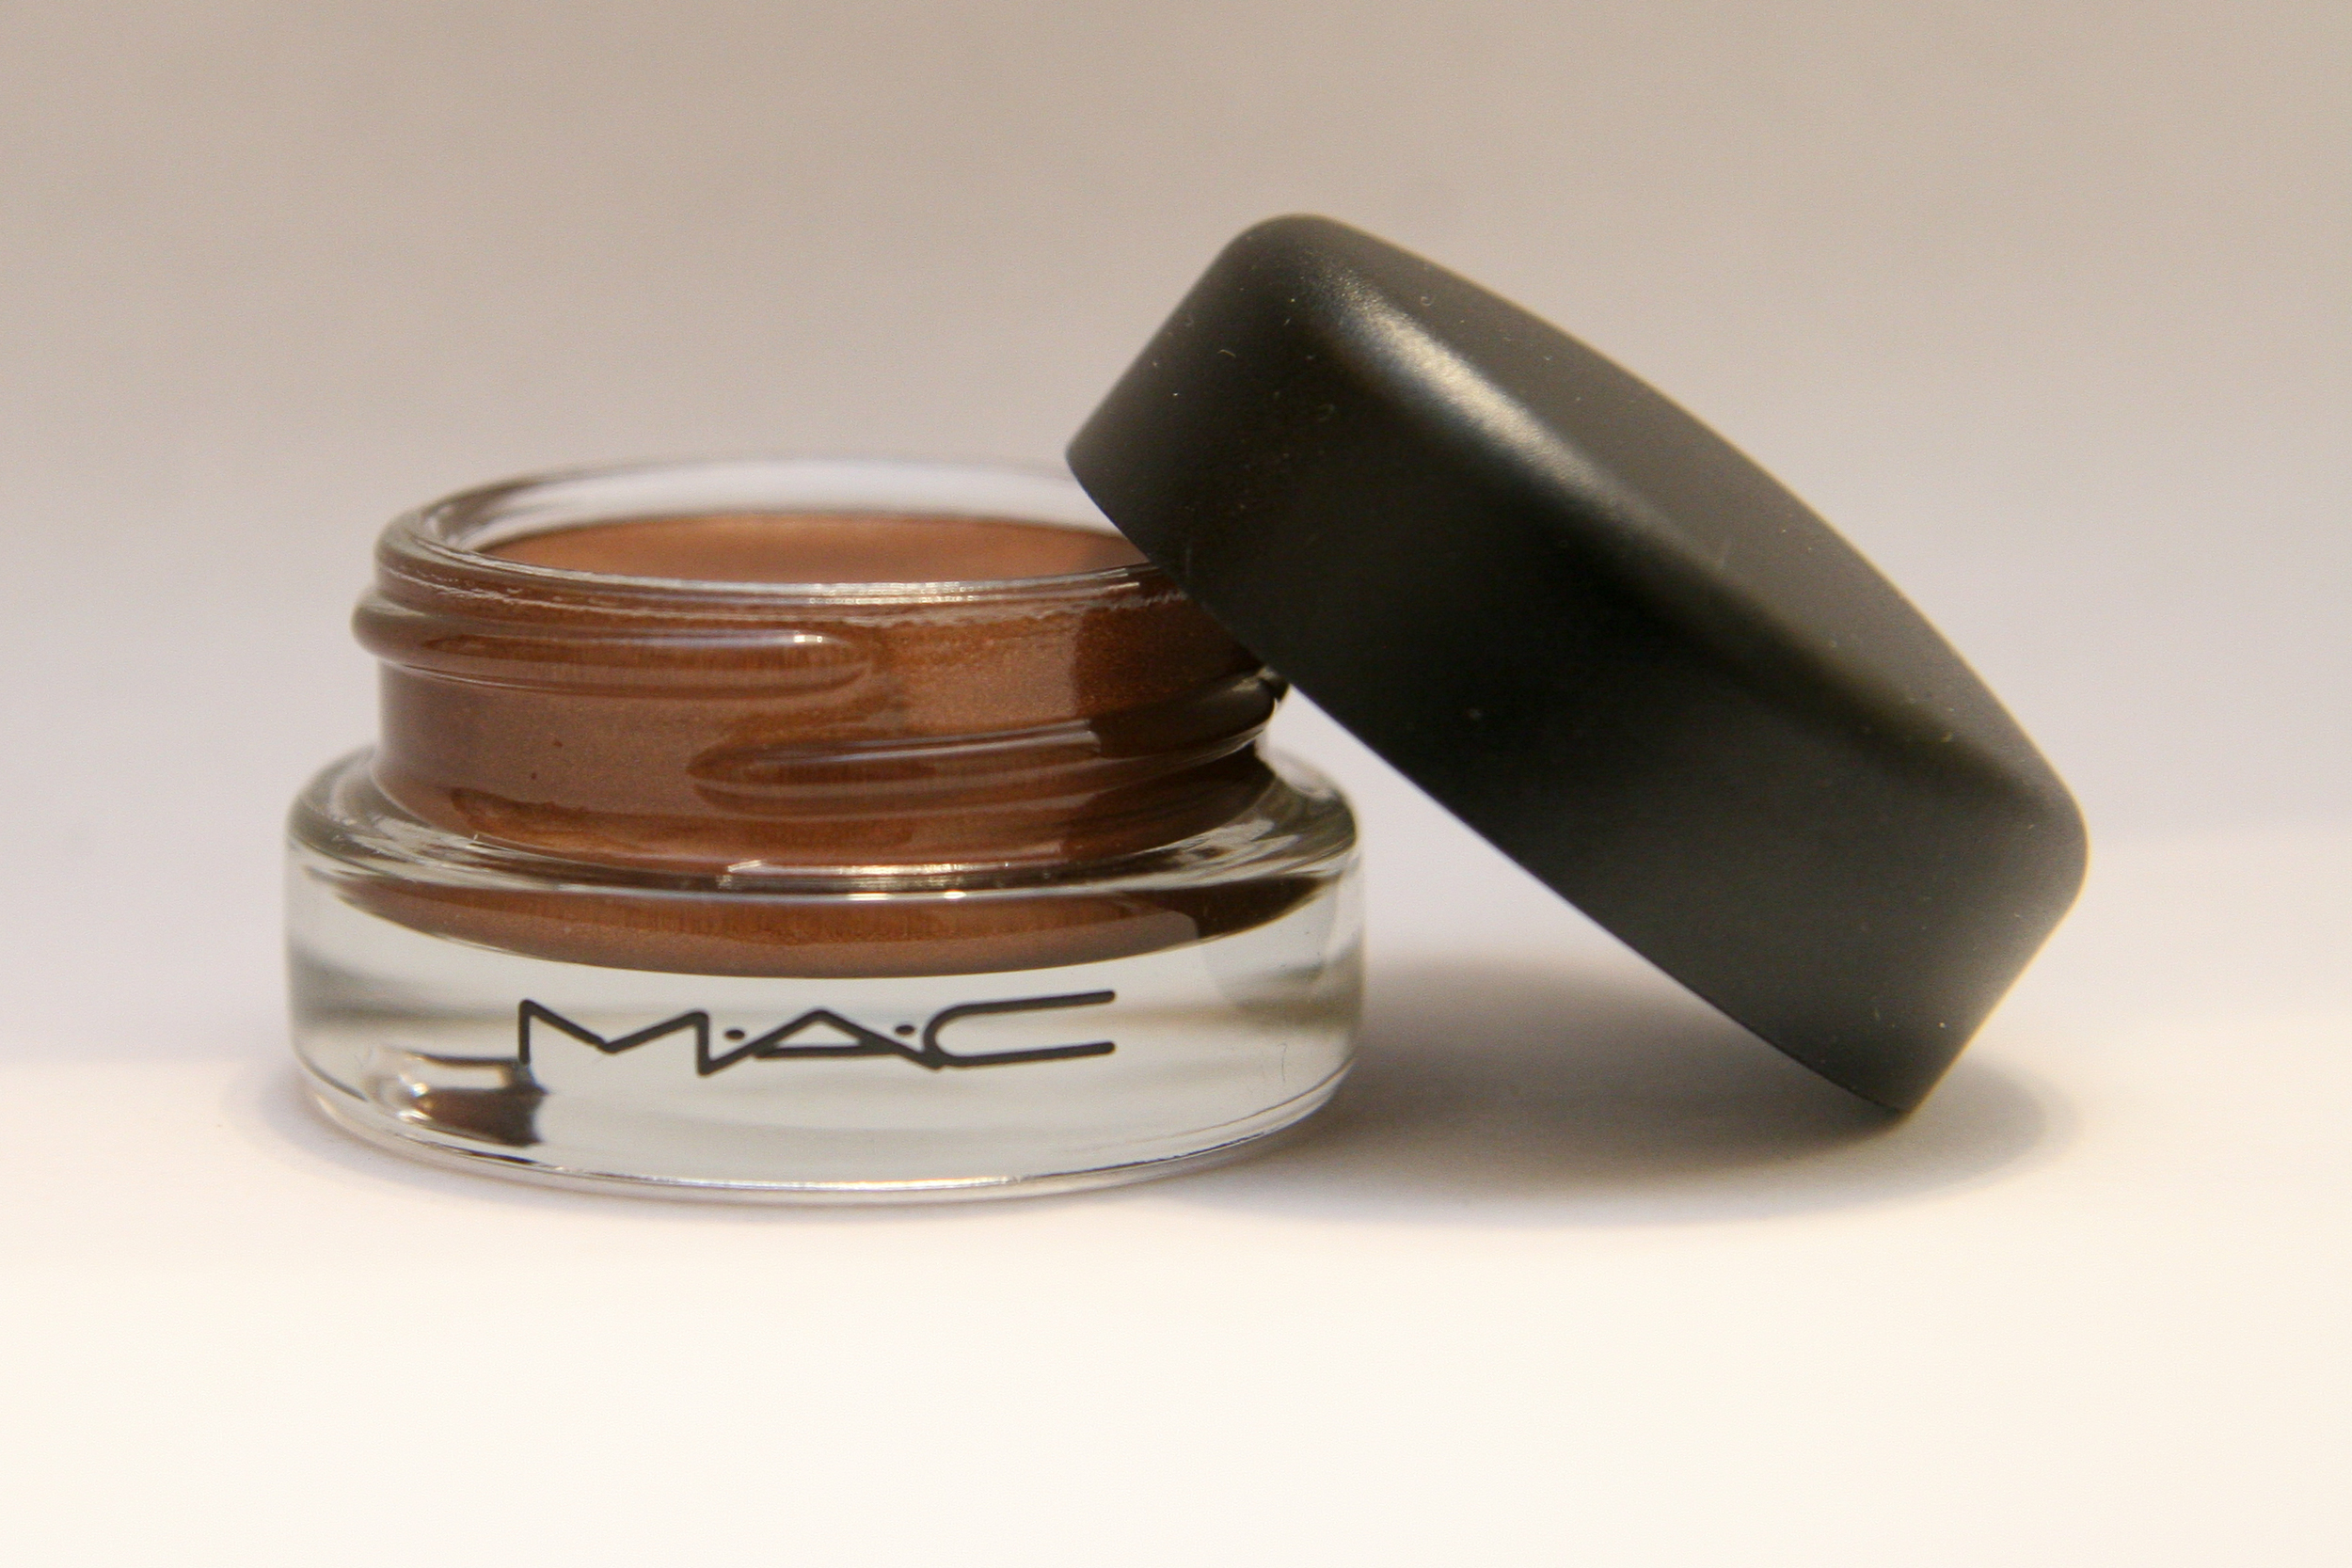 MAC Pro Longwear Paint Pot in Eclair from the Baking Beauties collection.